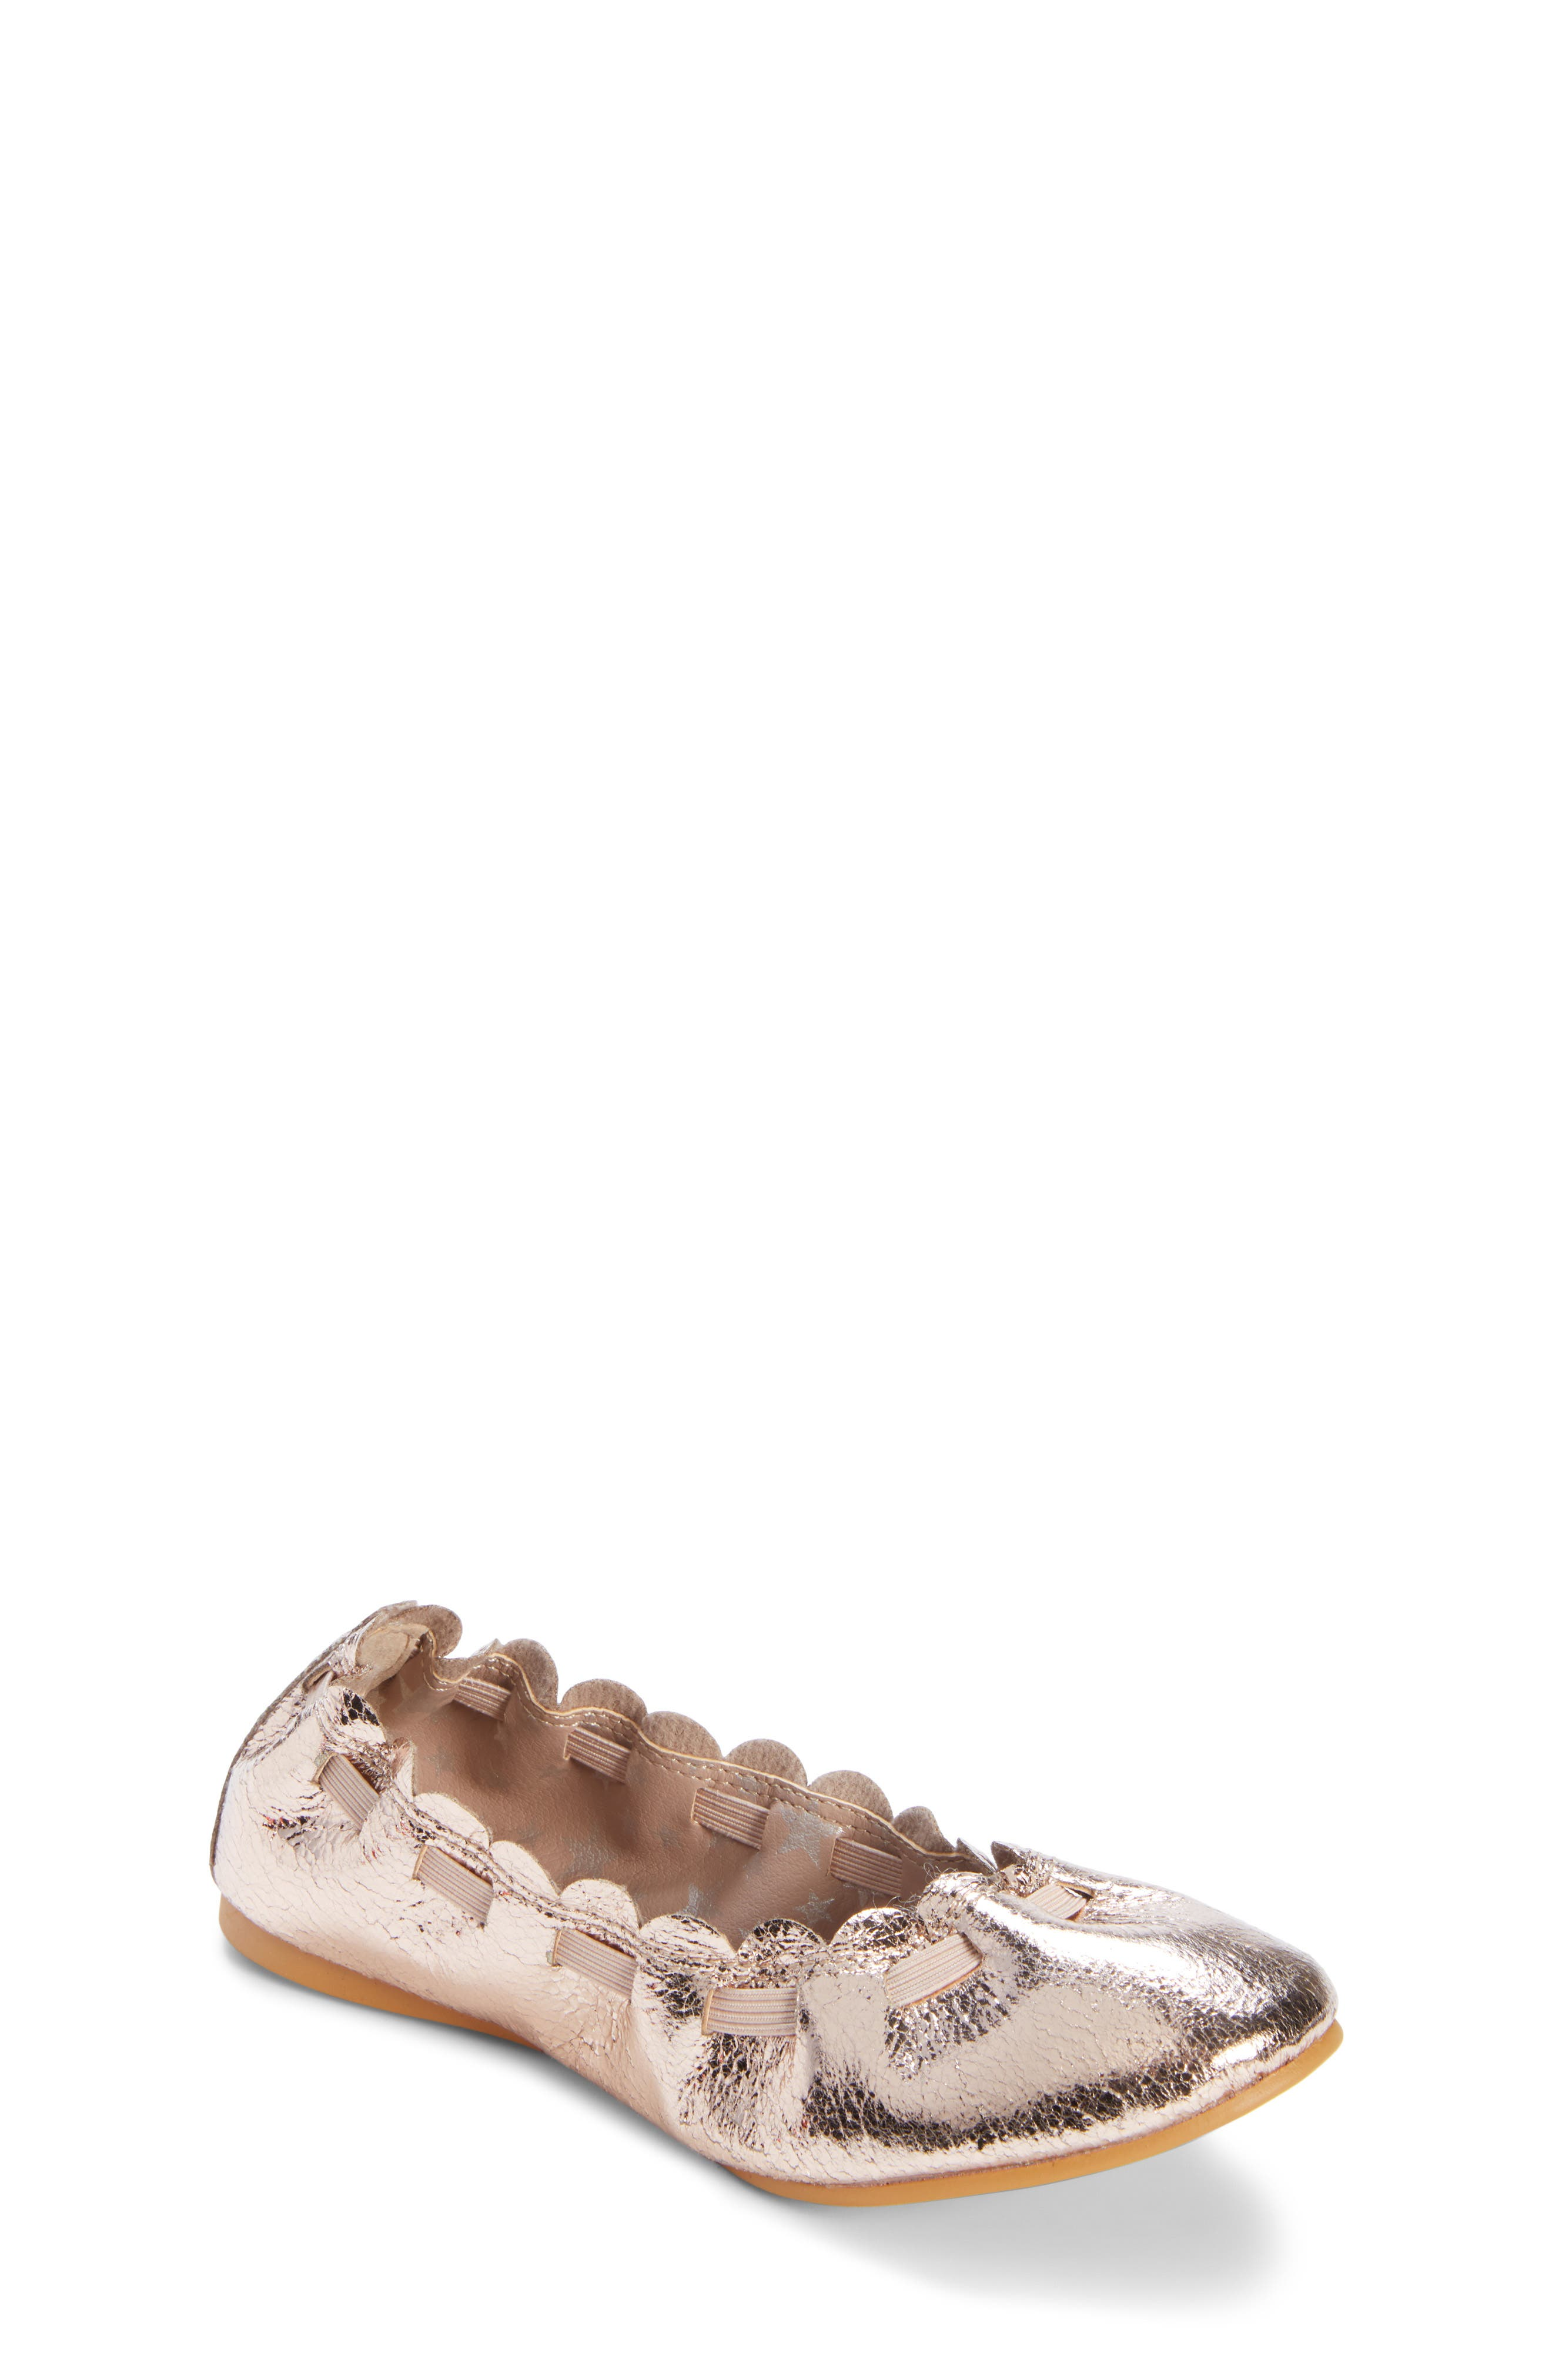 Scalloped Ballet Flat,                         Main,                         color, ROSE GOLD CRACKLE FAUX LEATHER